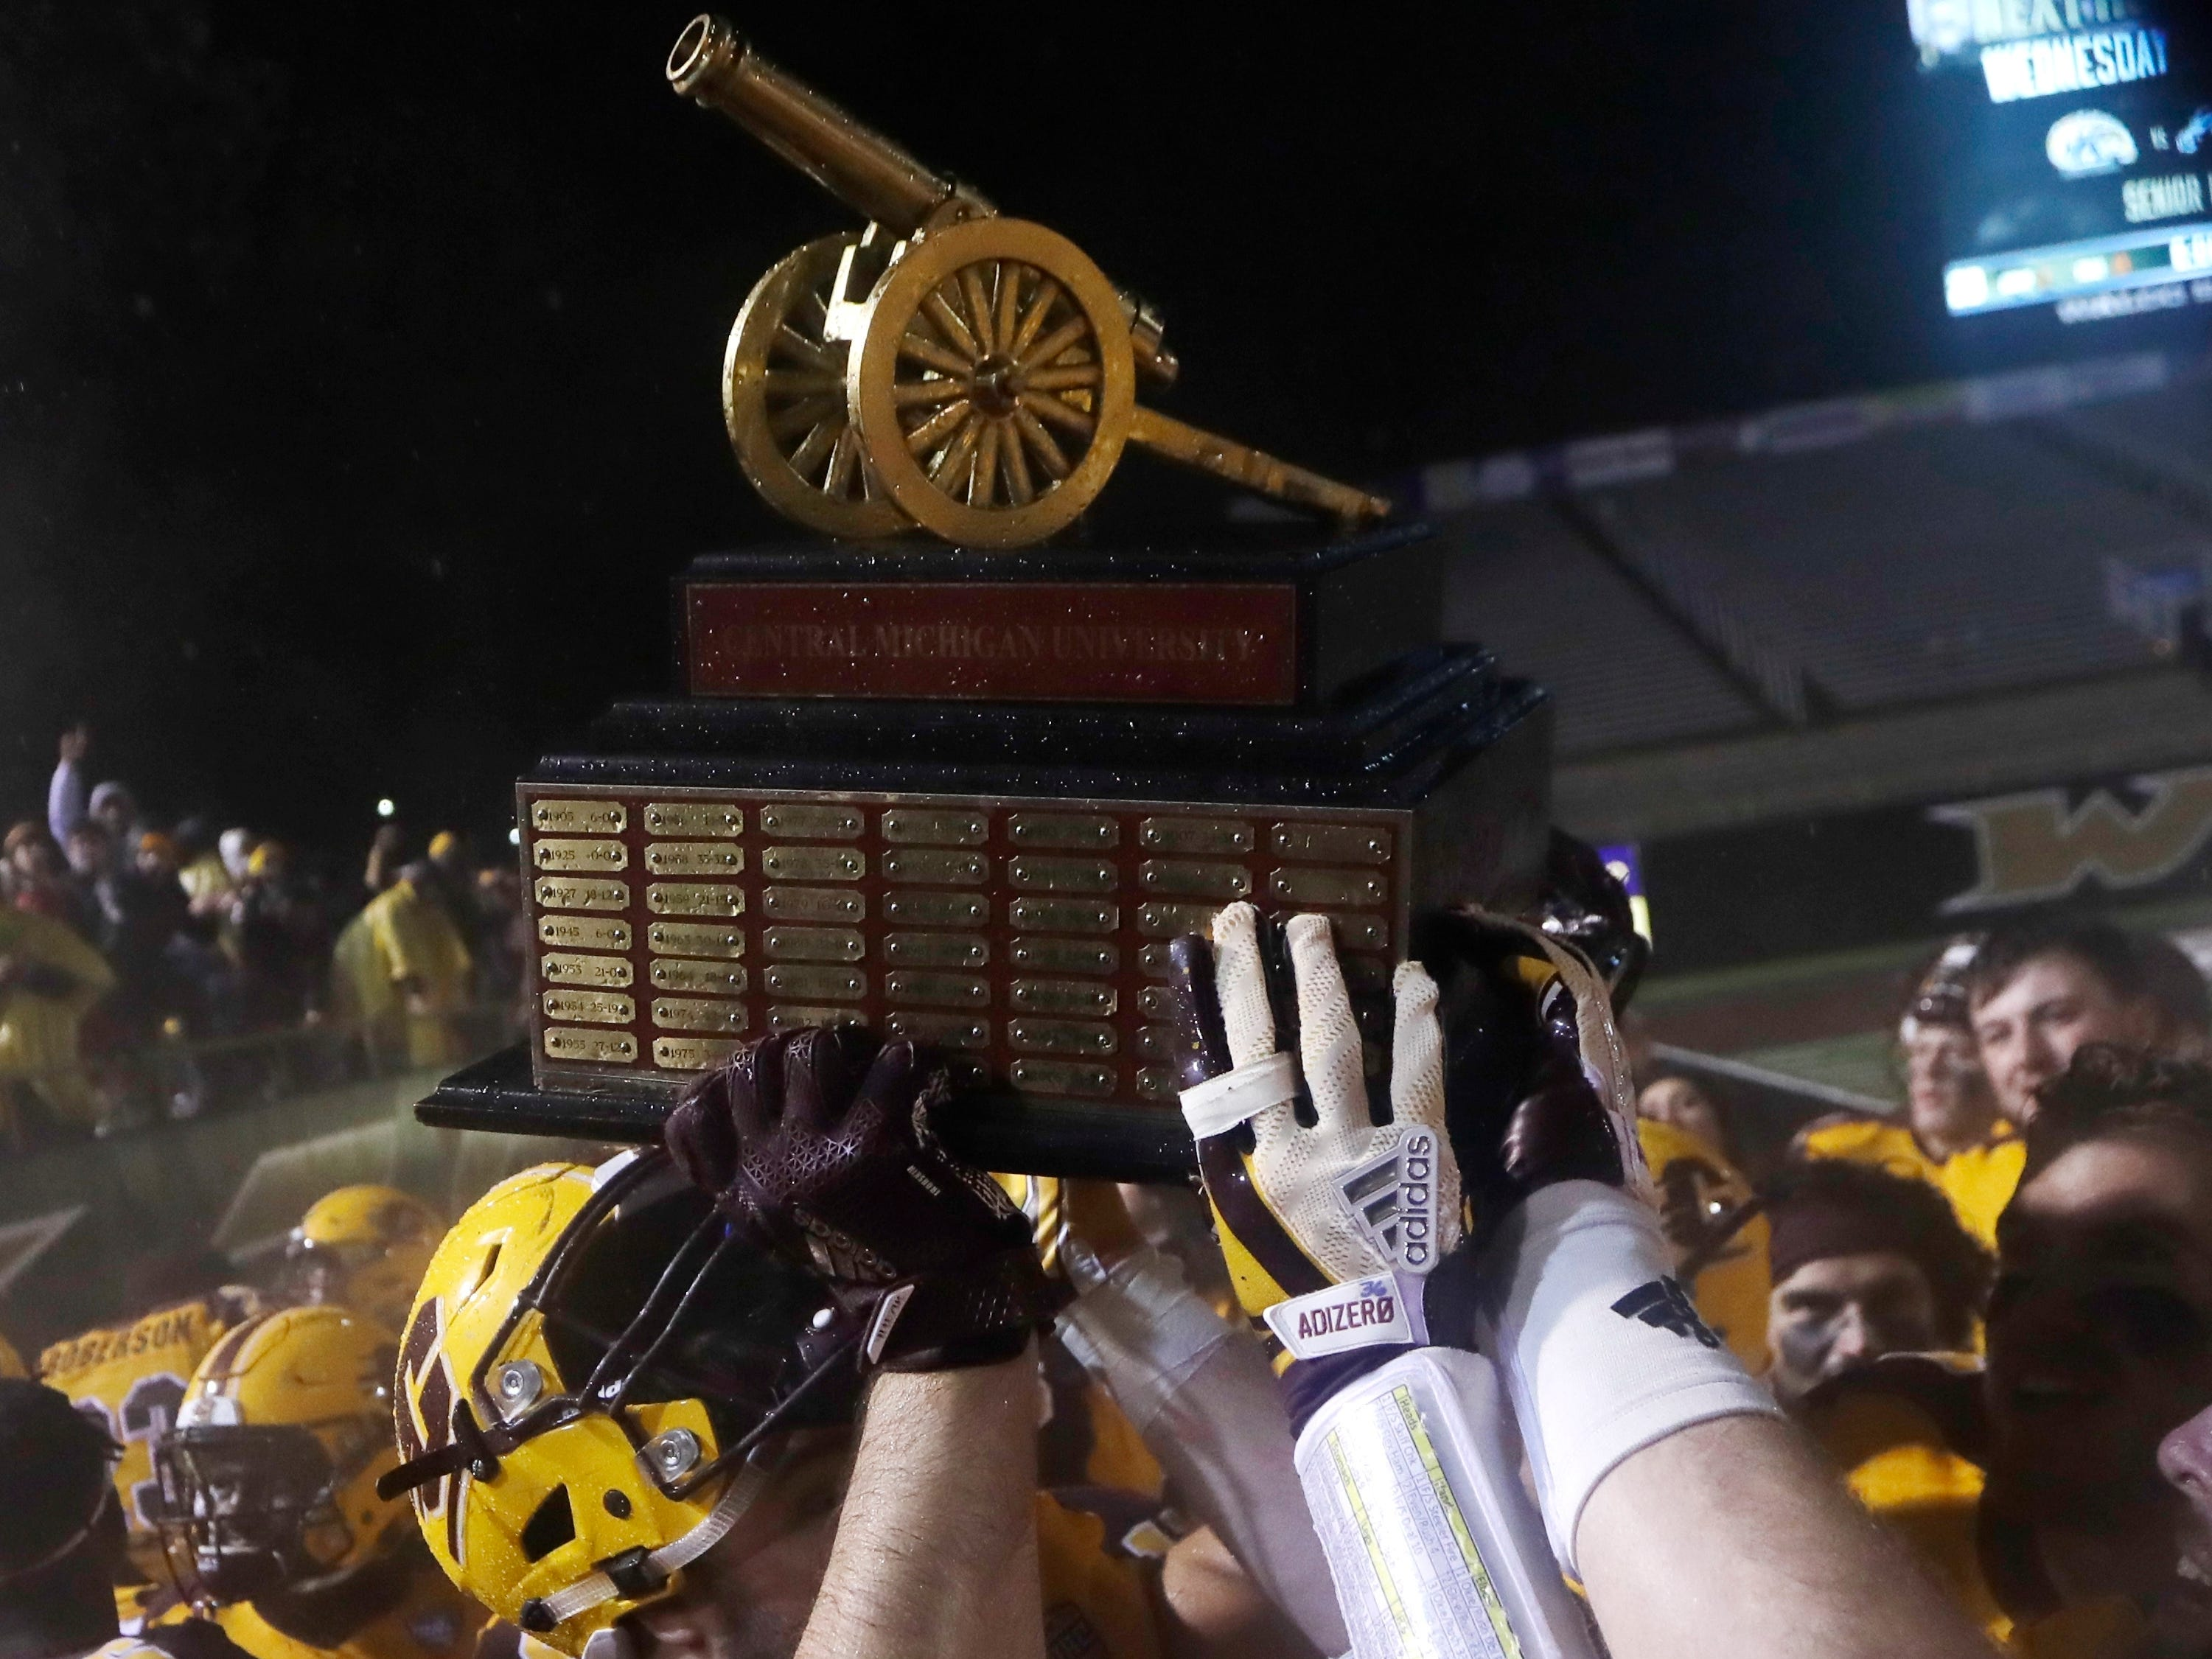 Central Michigan players hold the Victory Cannon trophy after their win against Western Michigan, Nov. 1, 2017, in Kalamazoo. The Victory Cannon is awarded to the winner of the in-state rivalry.